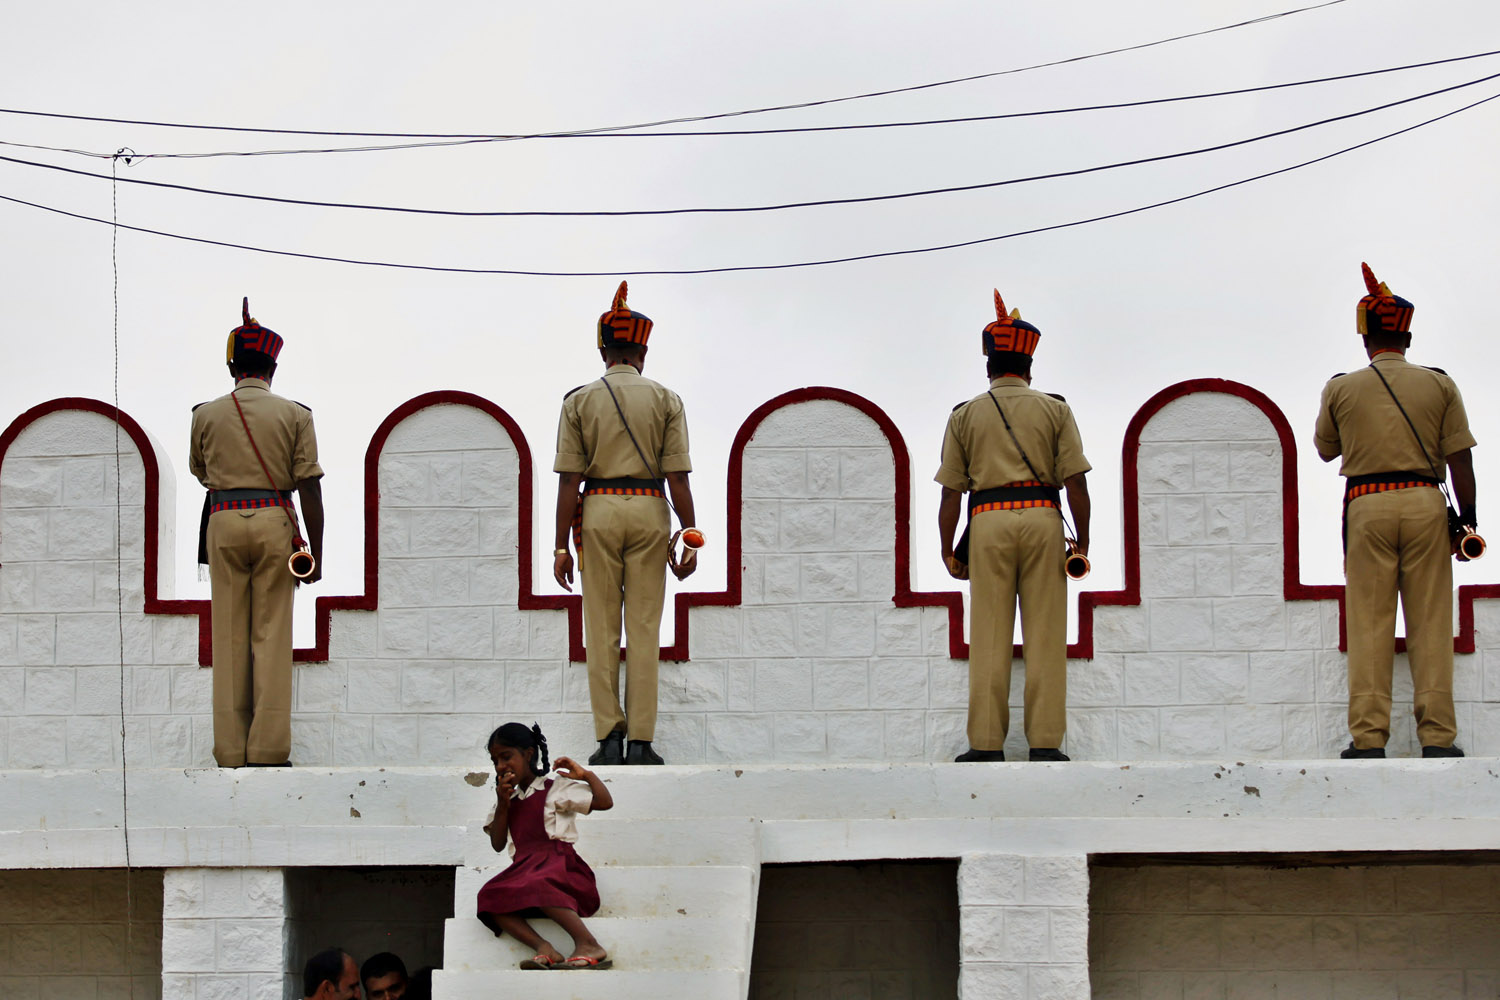 Aug. 15, 2012. Police wait with their trumpets to perform during a gathering to celebrate the 65th anniversary of India's independence from British rule, in Bangalore, India.